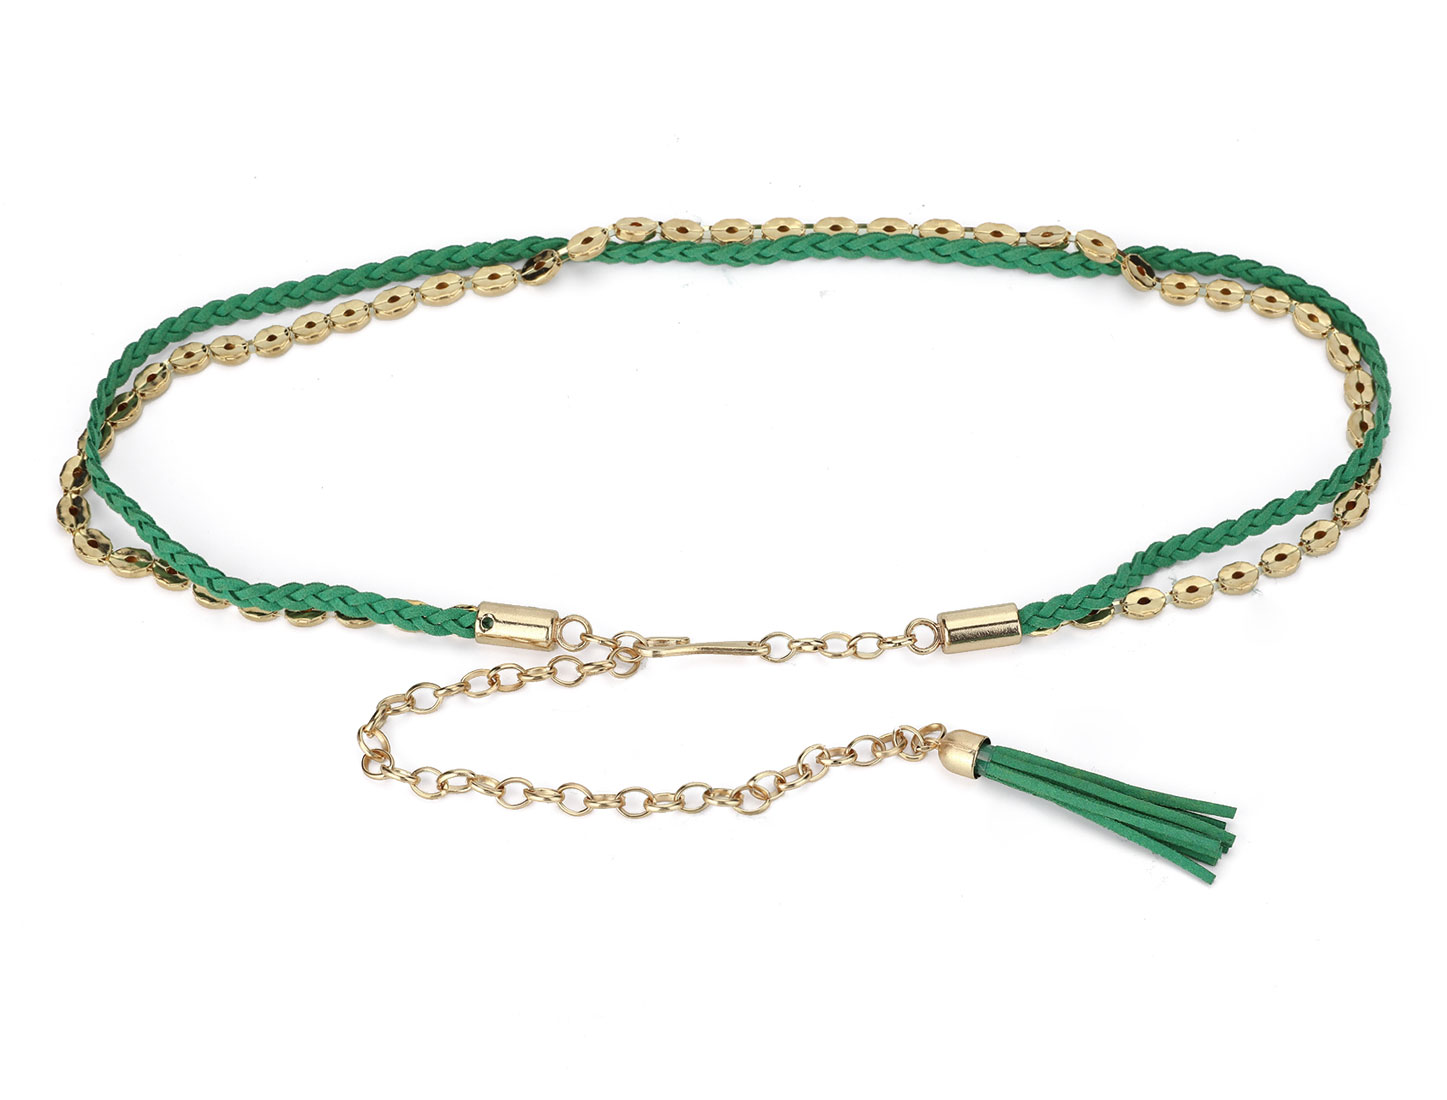 Green Gold Tone Metal Rolo Link Chain Waist Belt for Girls